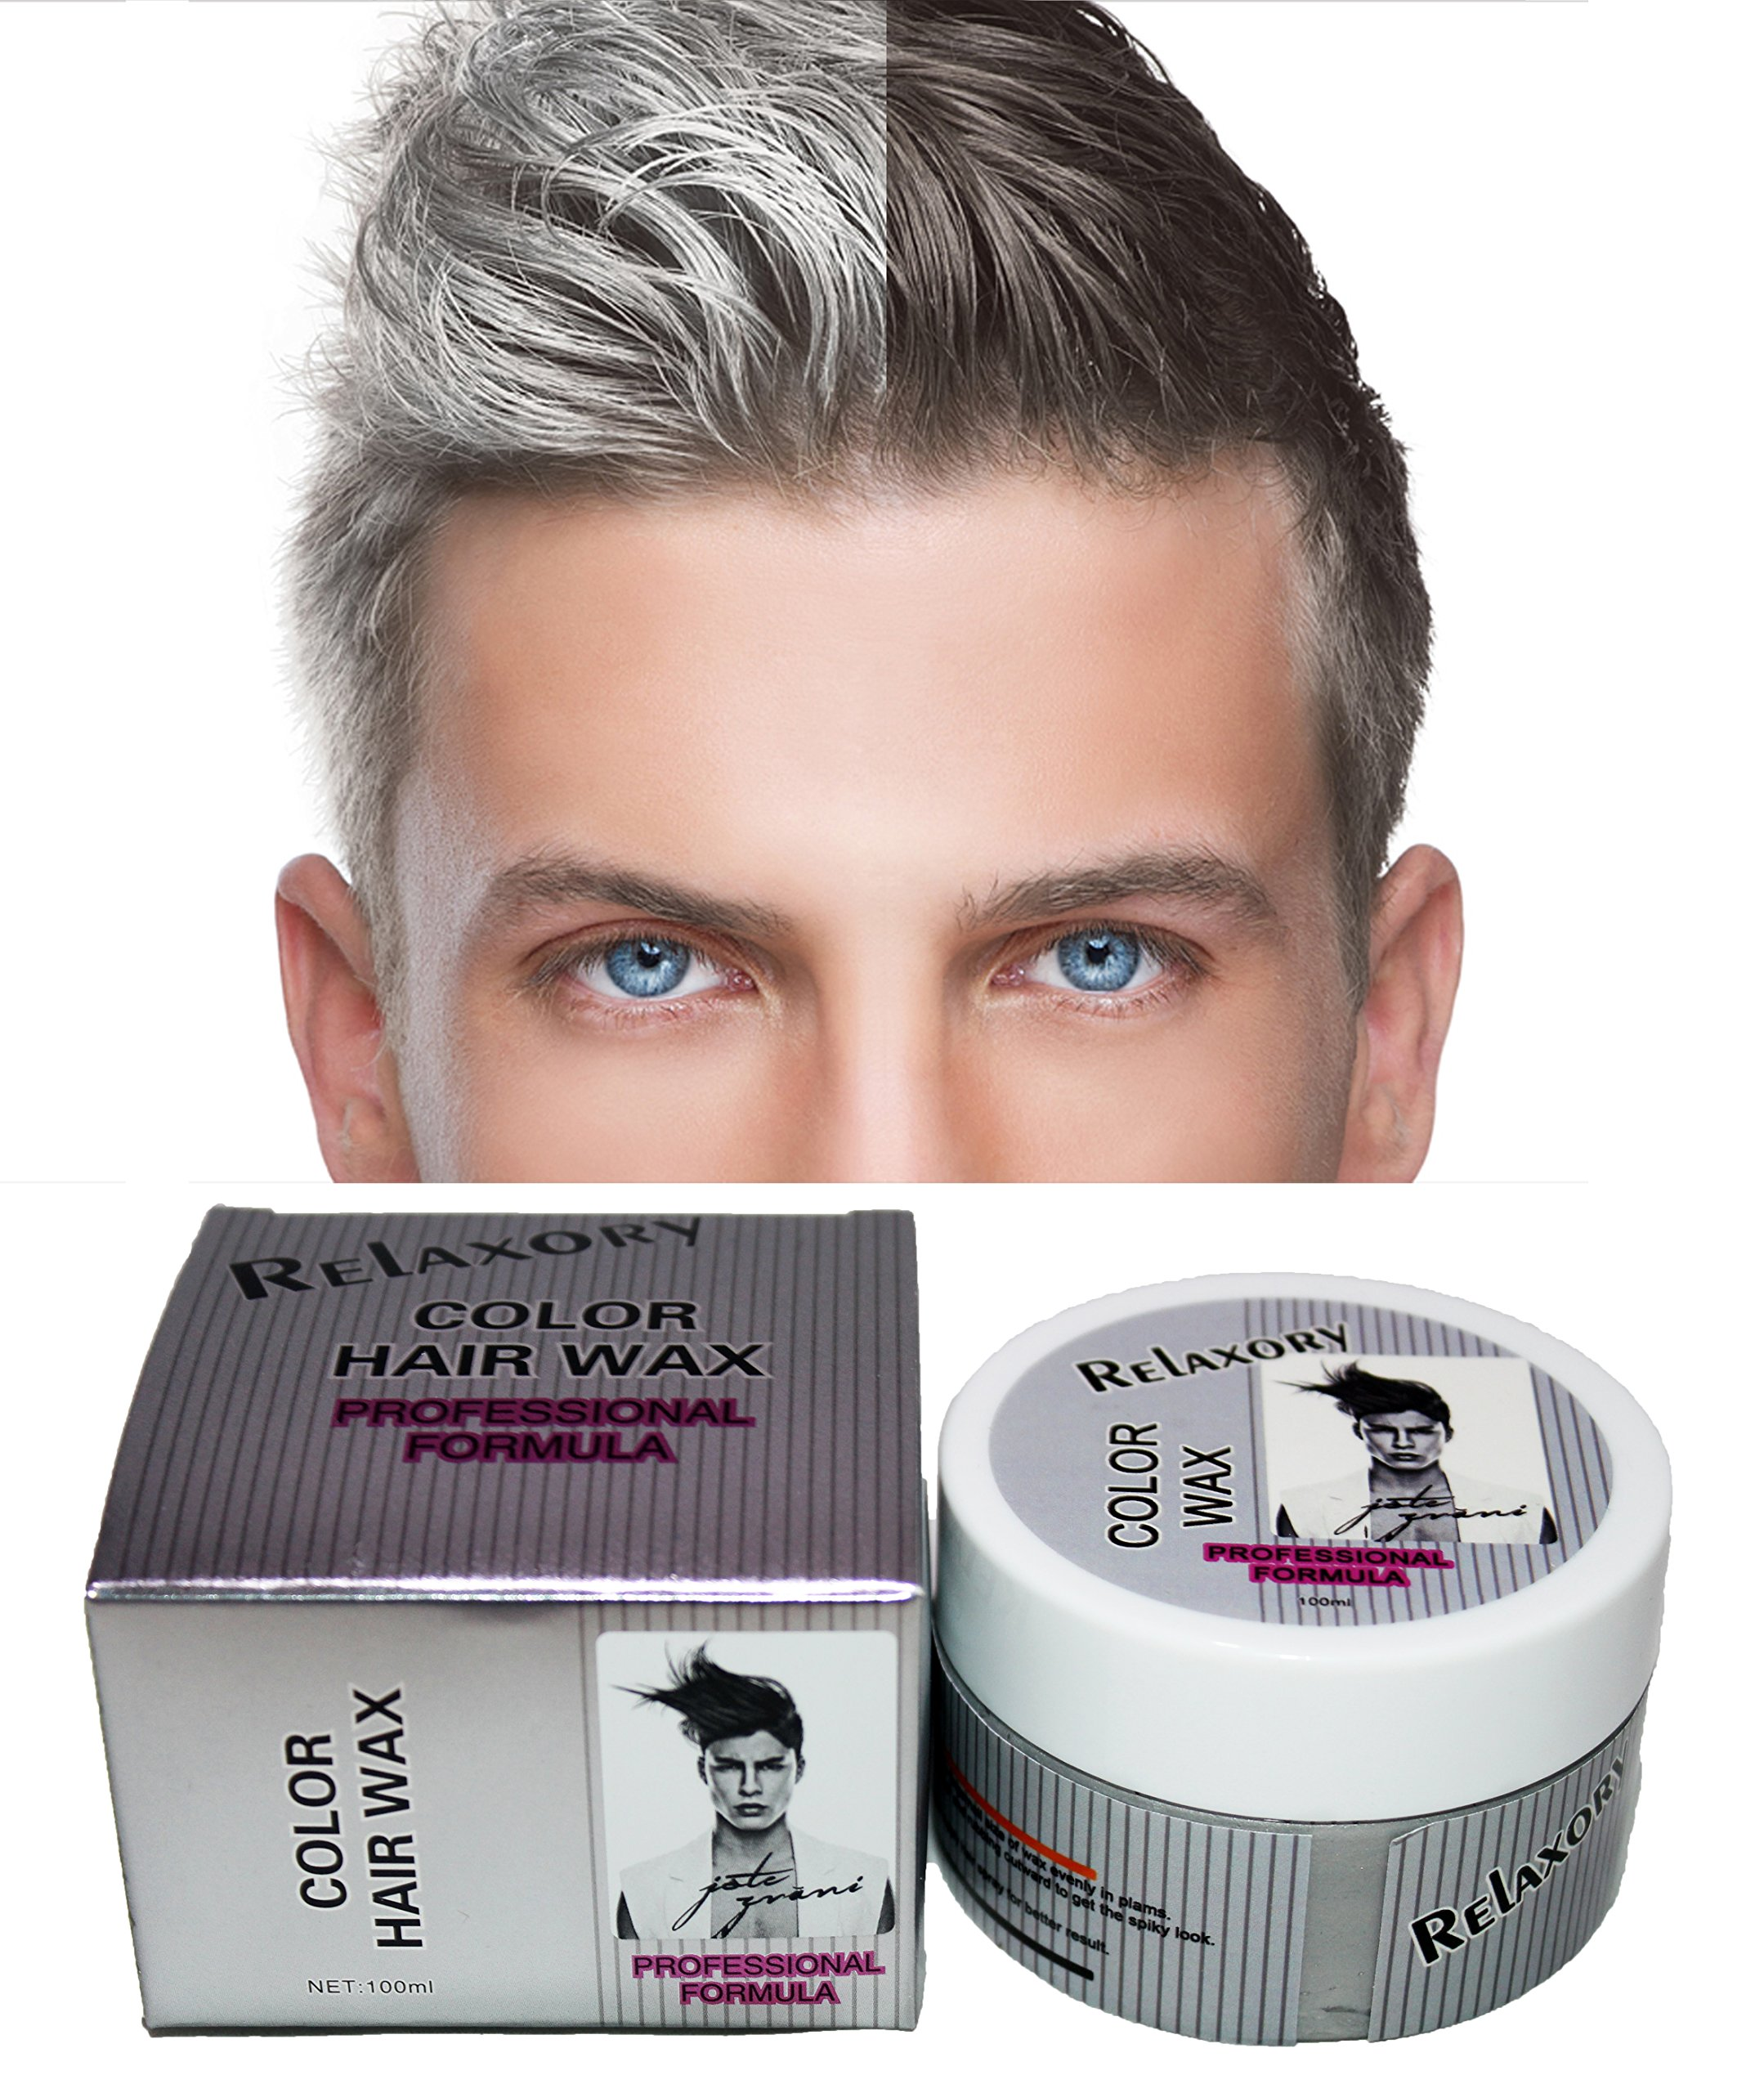 hair styling wax for men hair color styler wax 90ml silver ash 8473 | 91%2BSTxyjOnL